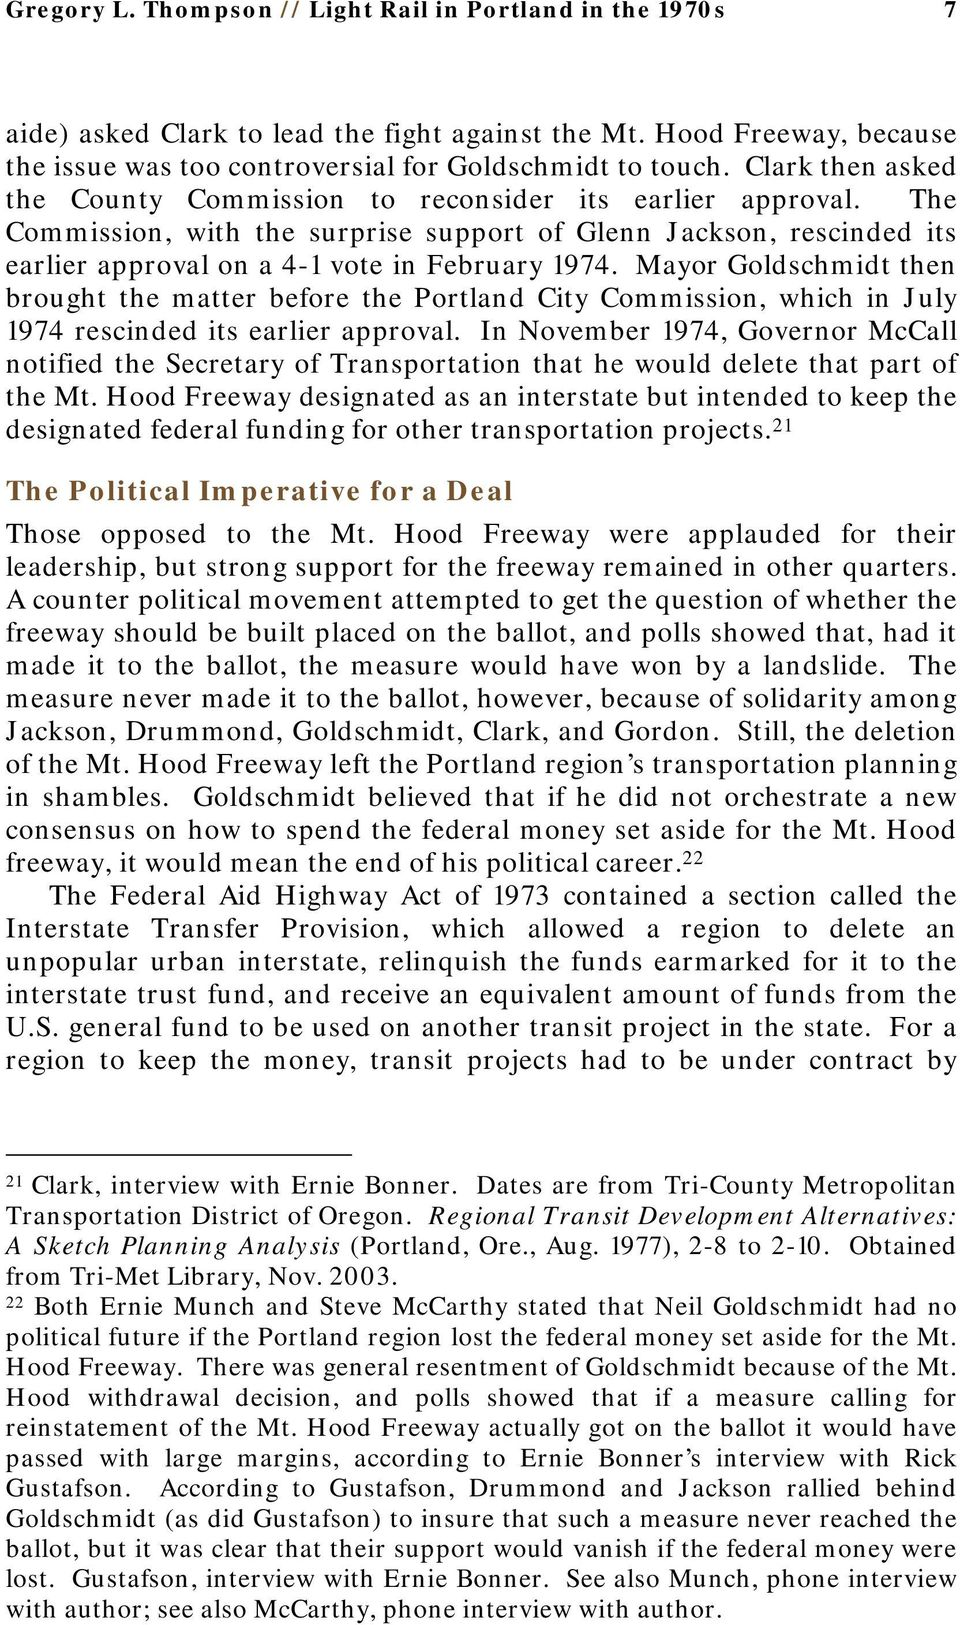 Mayor Goldschmidt then brought the matter before the Portland City Commission, which in July 1974 rescinded its earlier approval.